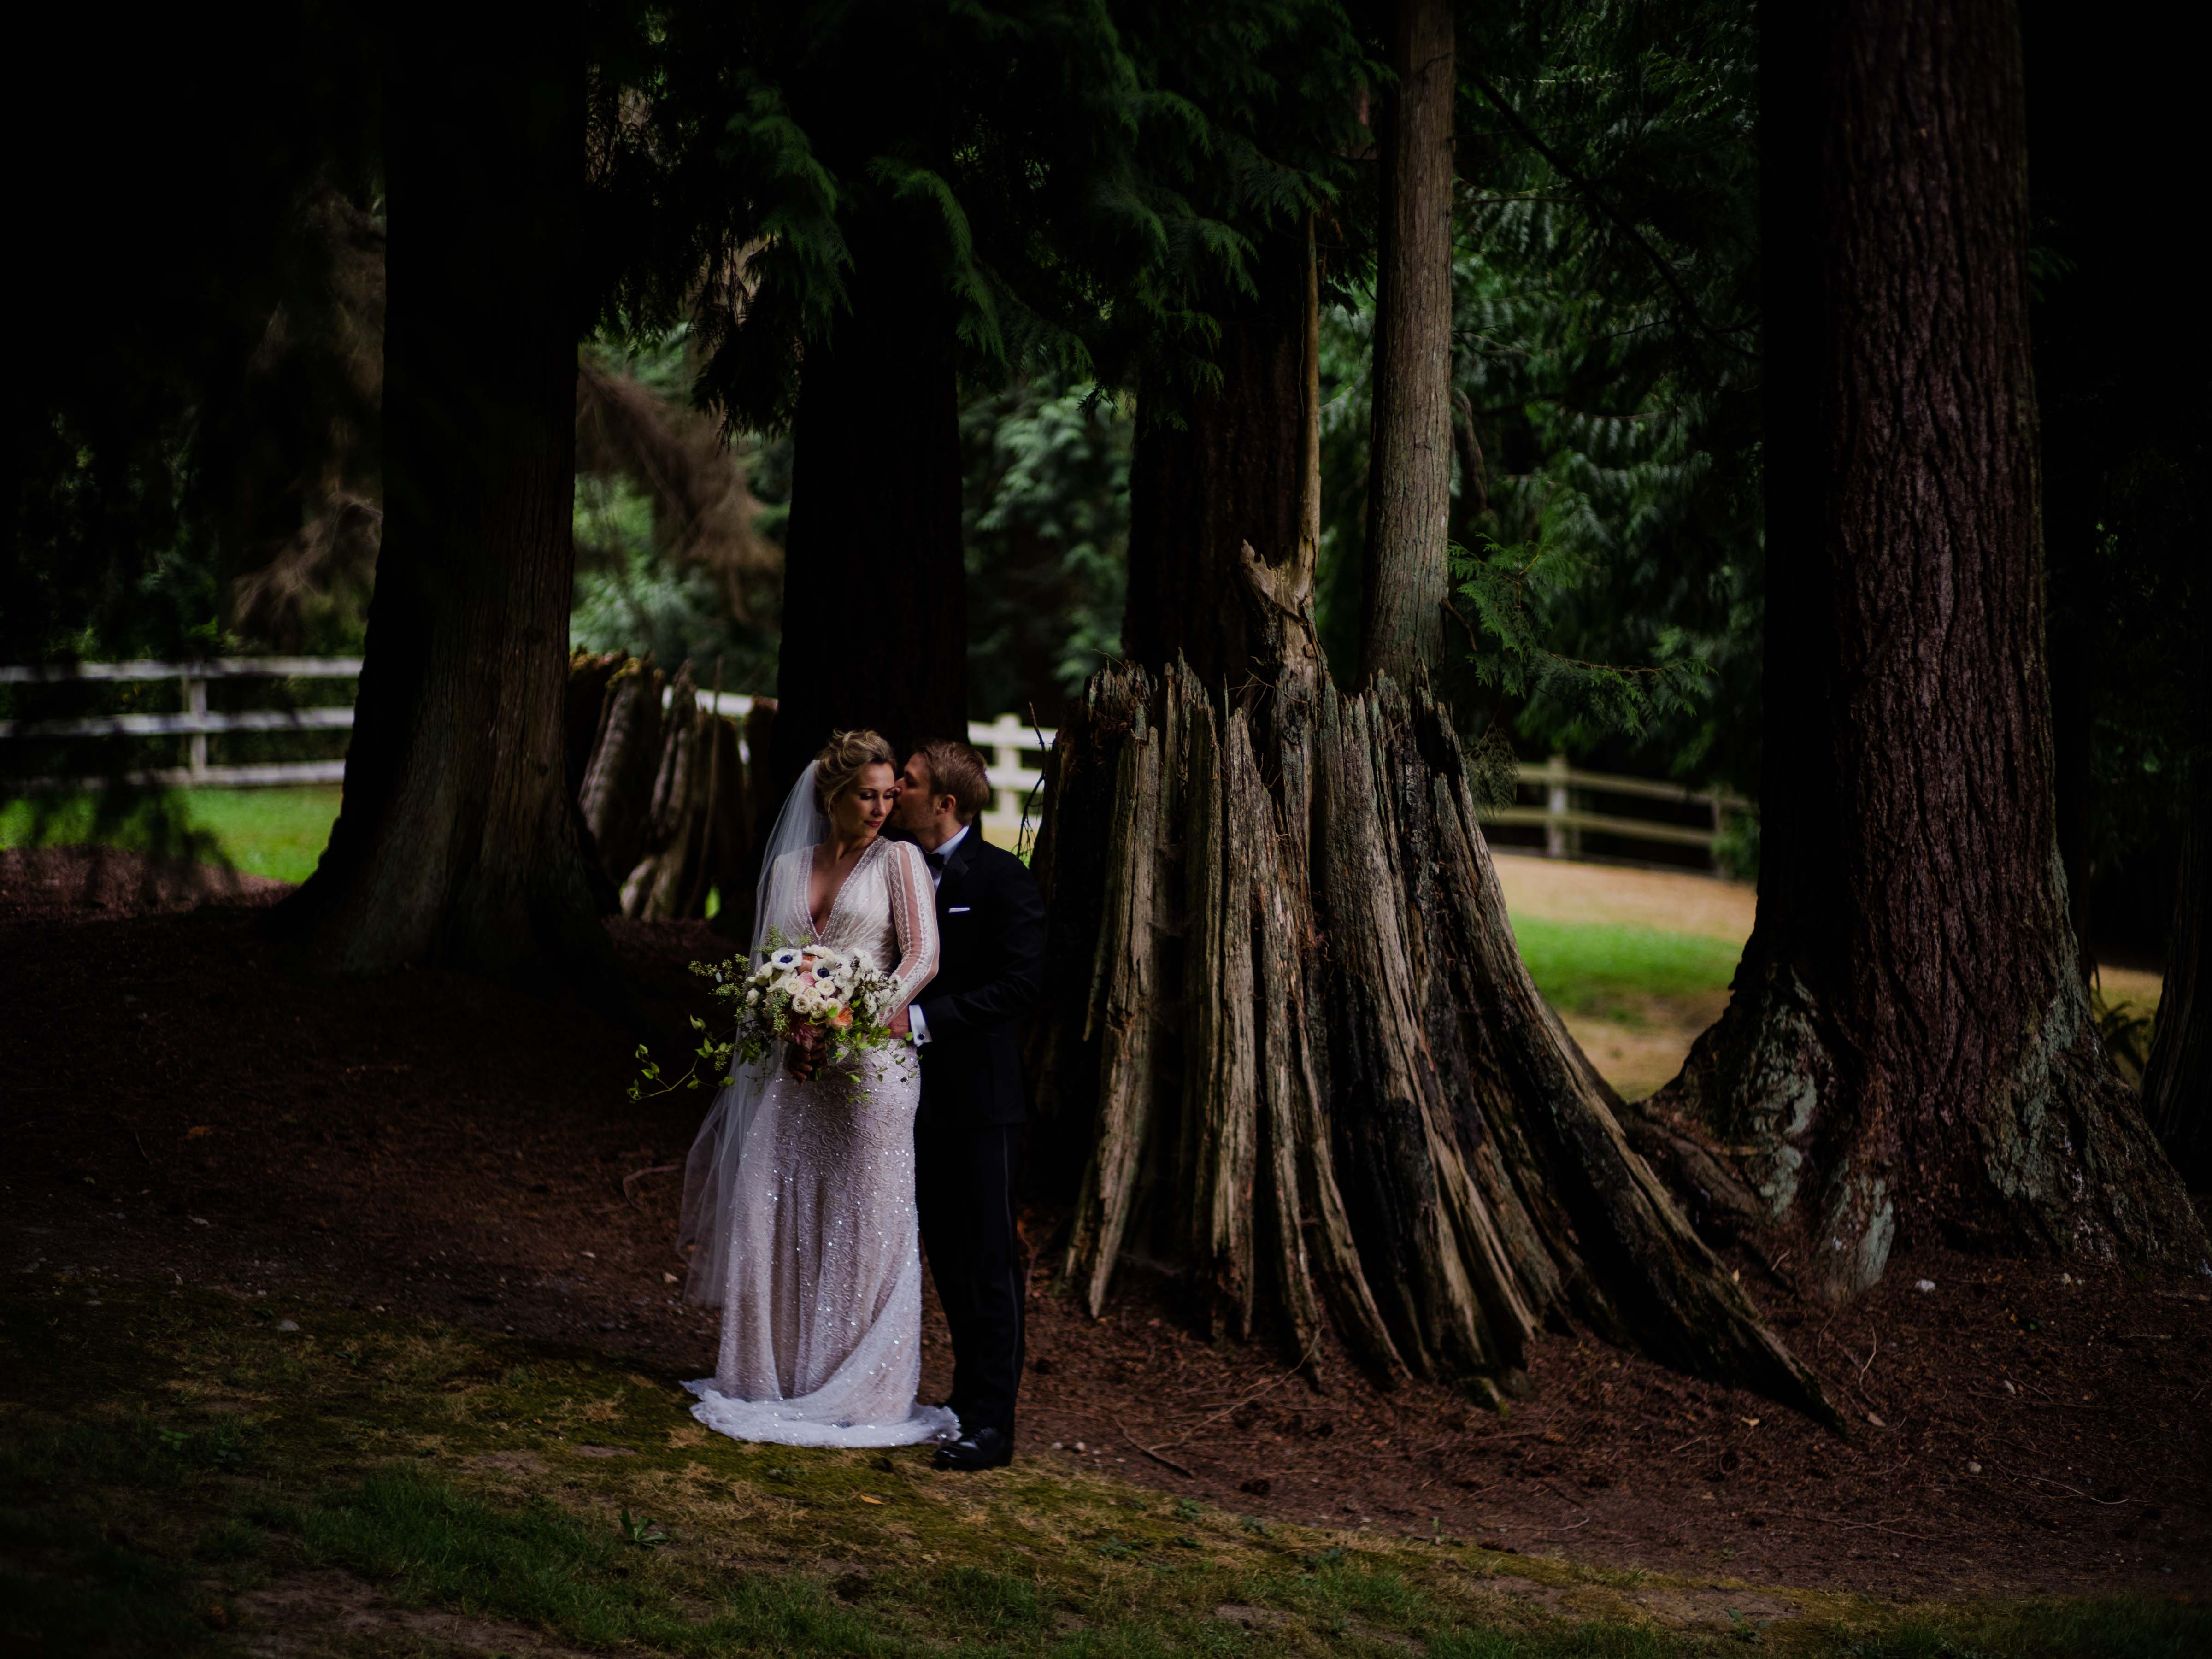 Bride and groom at Chateau Lill wedding